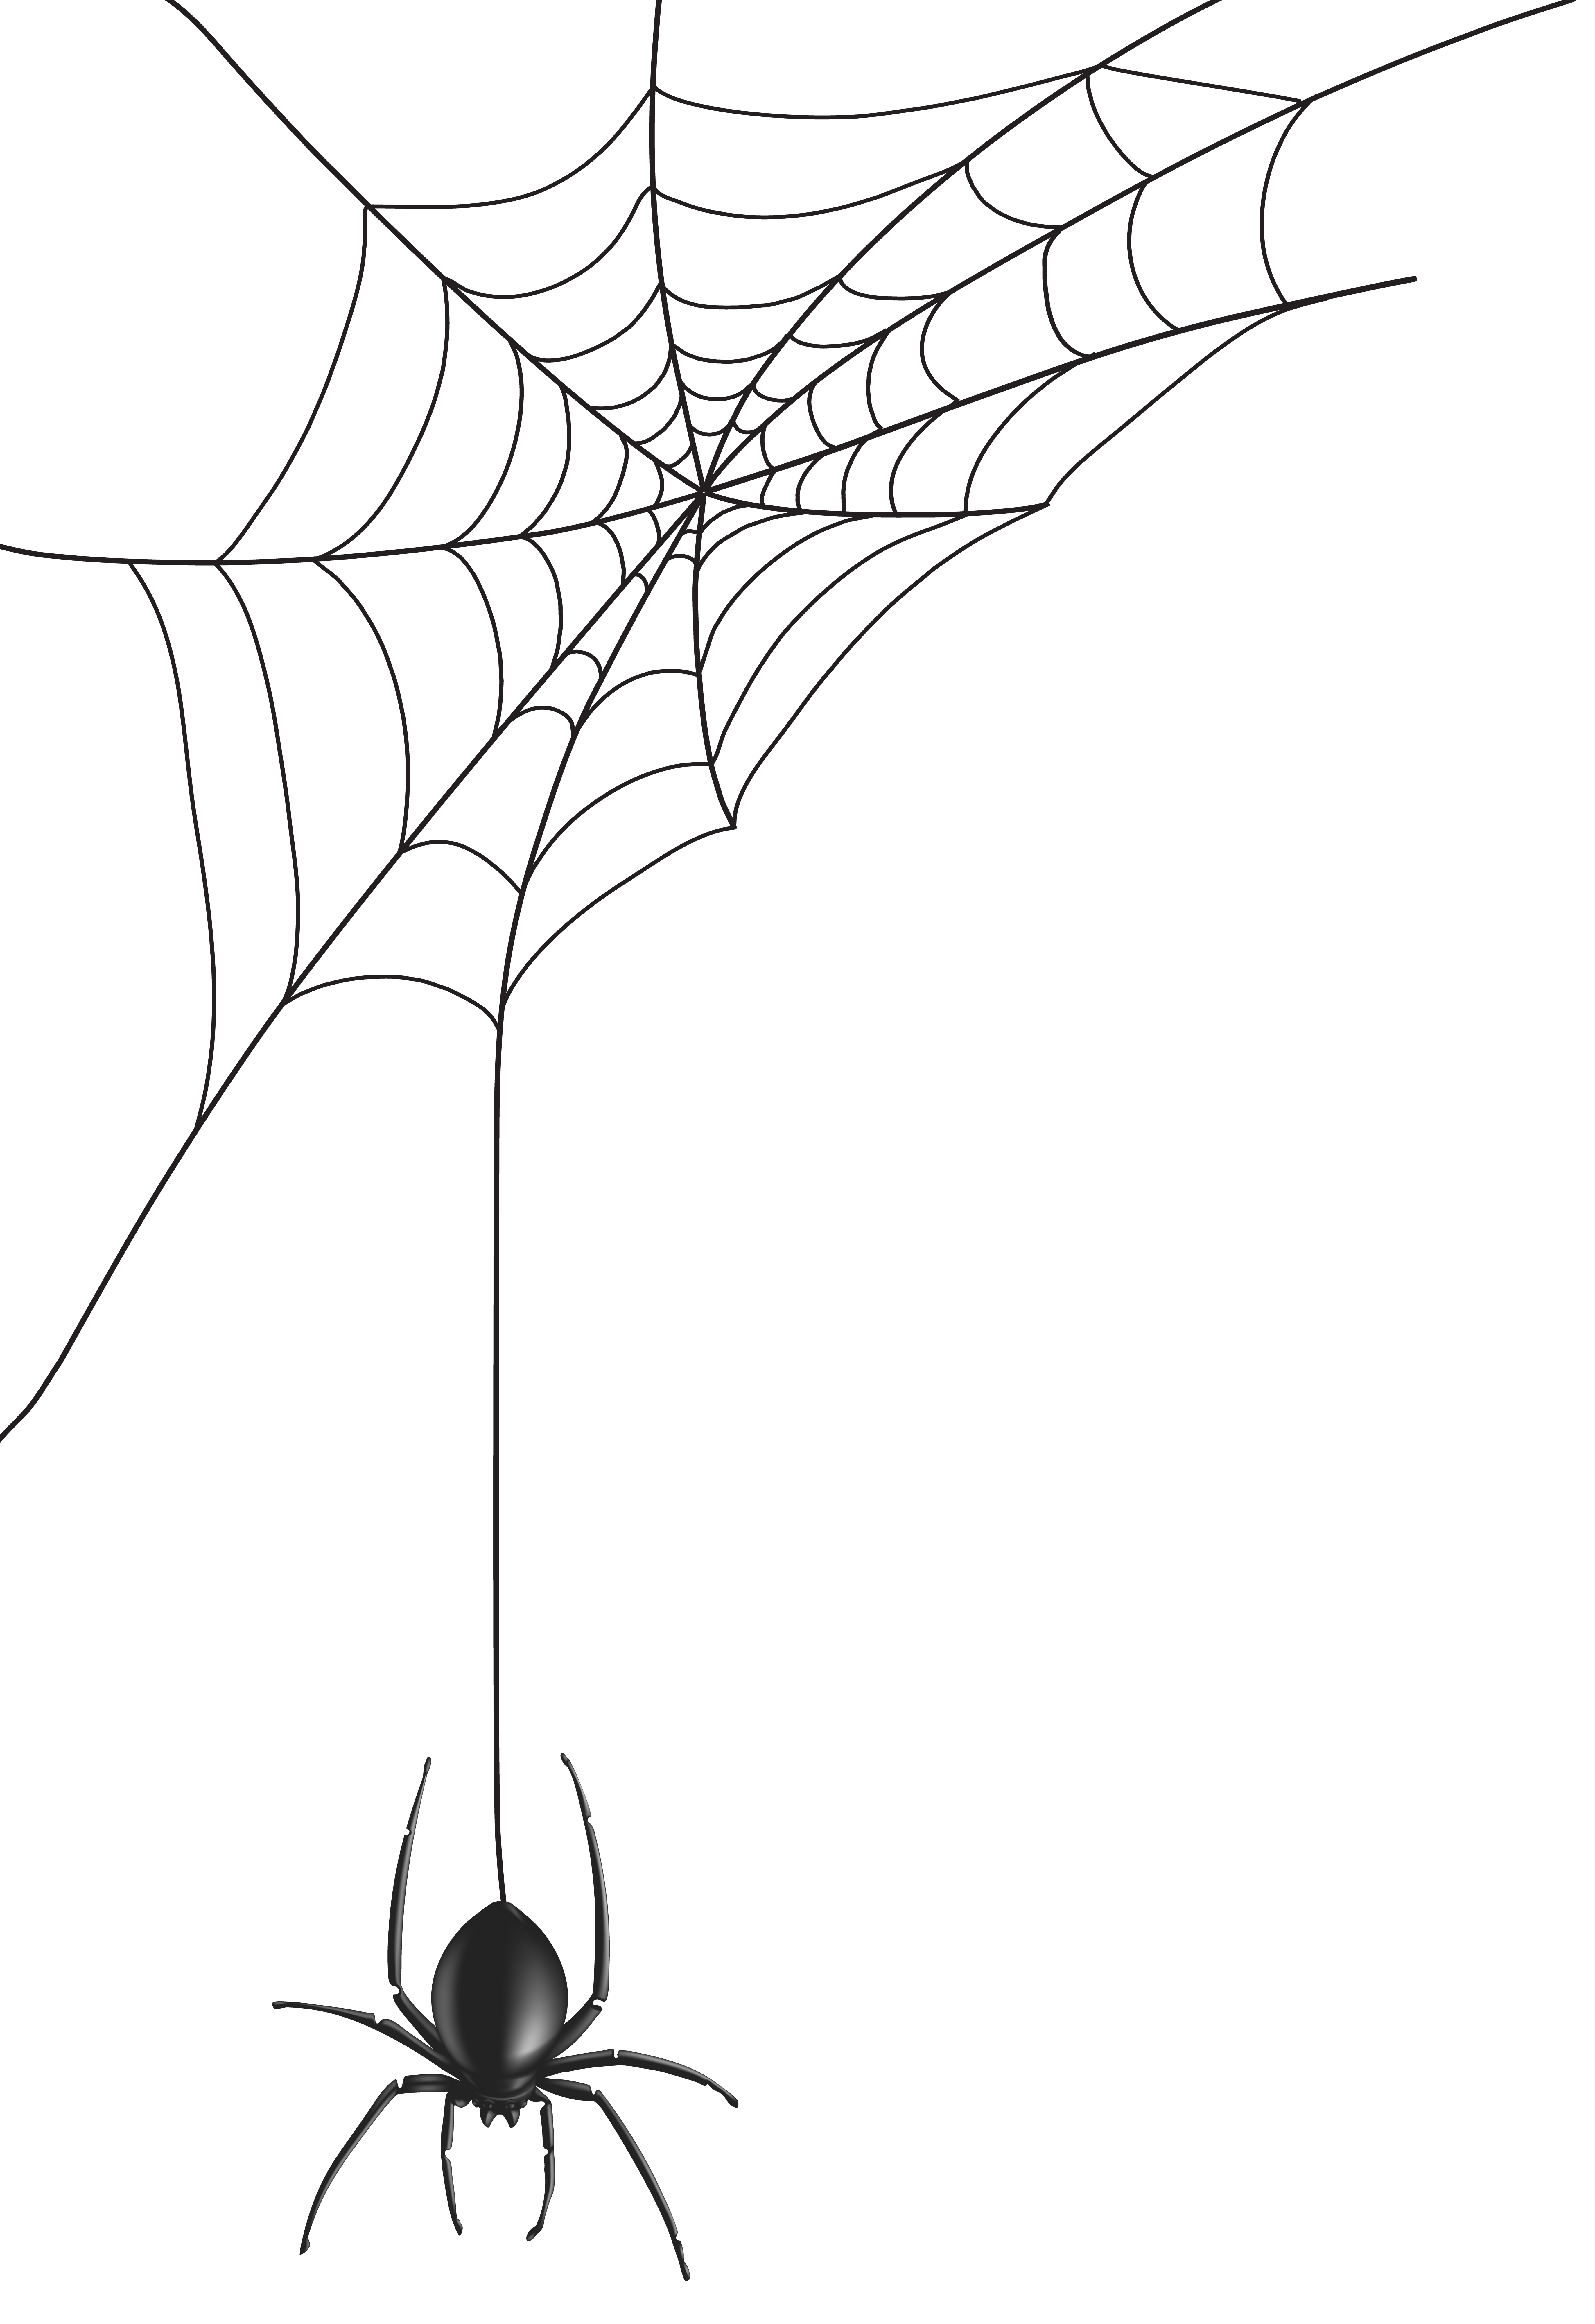 Spider Web Png Clip Art Image Gallery Yopriceville High Quality Images And Transparent Png Free Clipart Spider Art Spider Drawing Spider Web Drawing